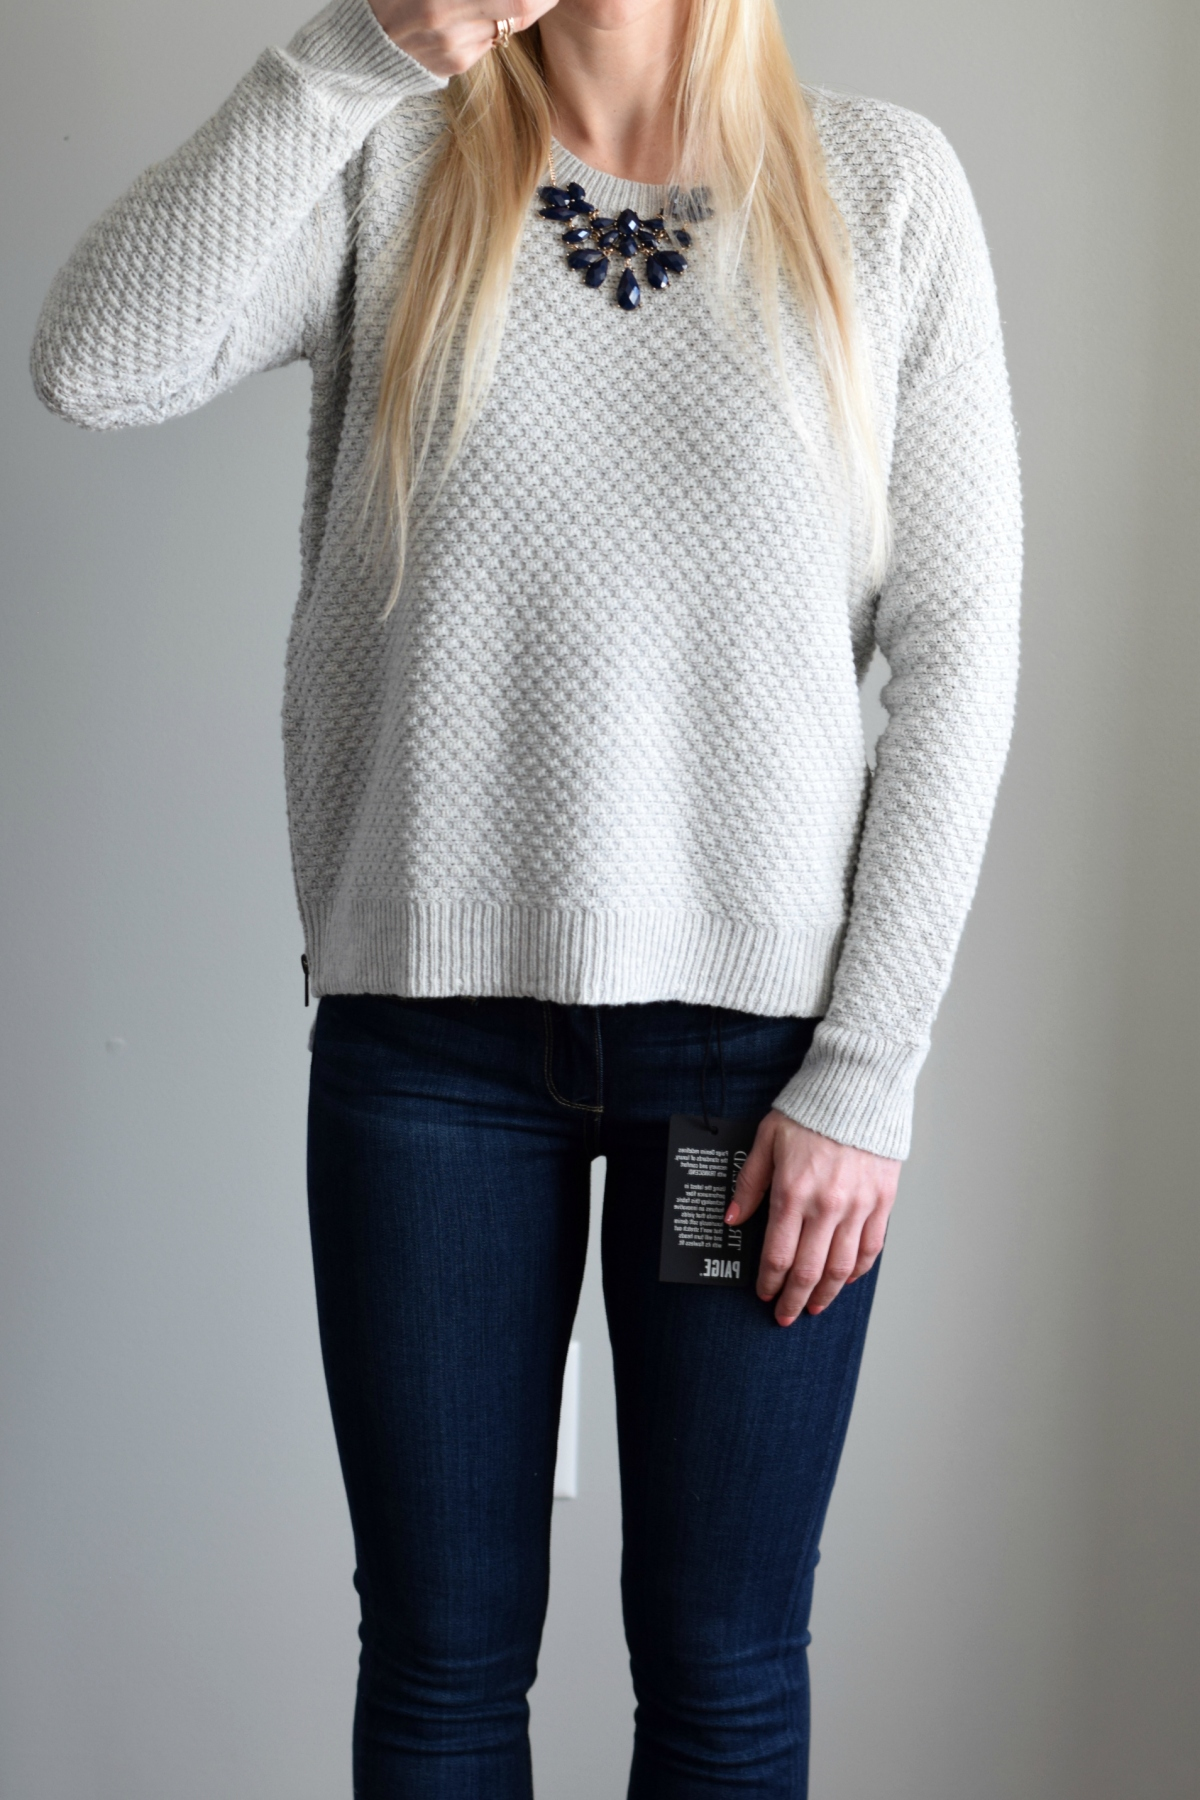 Trunk Club Review: Madewell Texture Sweater and Paige Denim |www.pearlsandsportsbras.com|